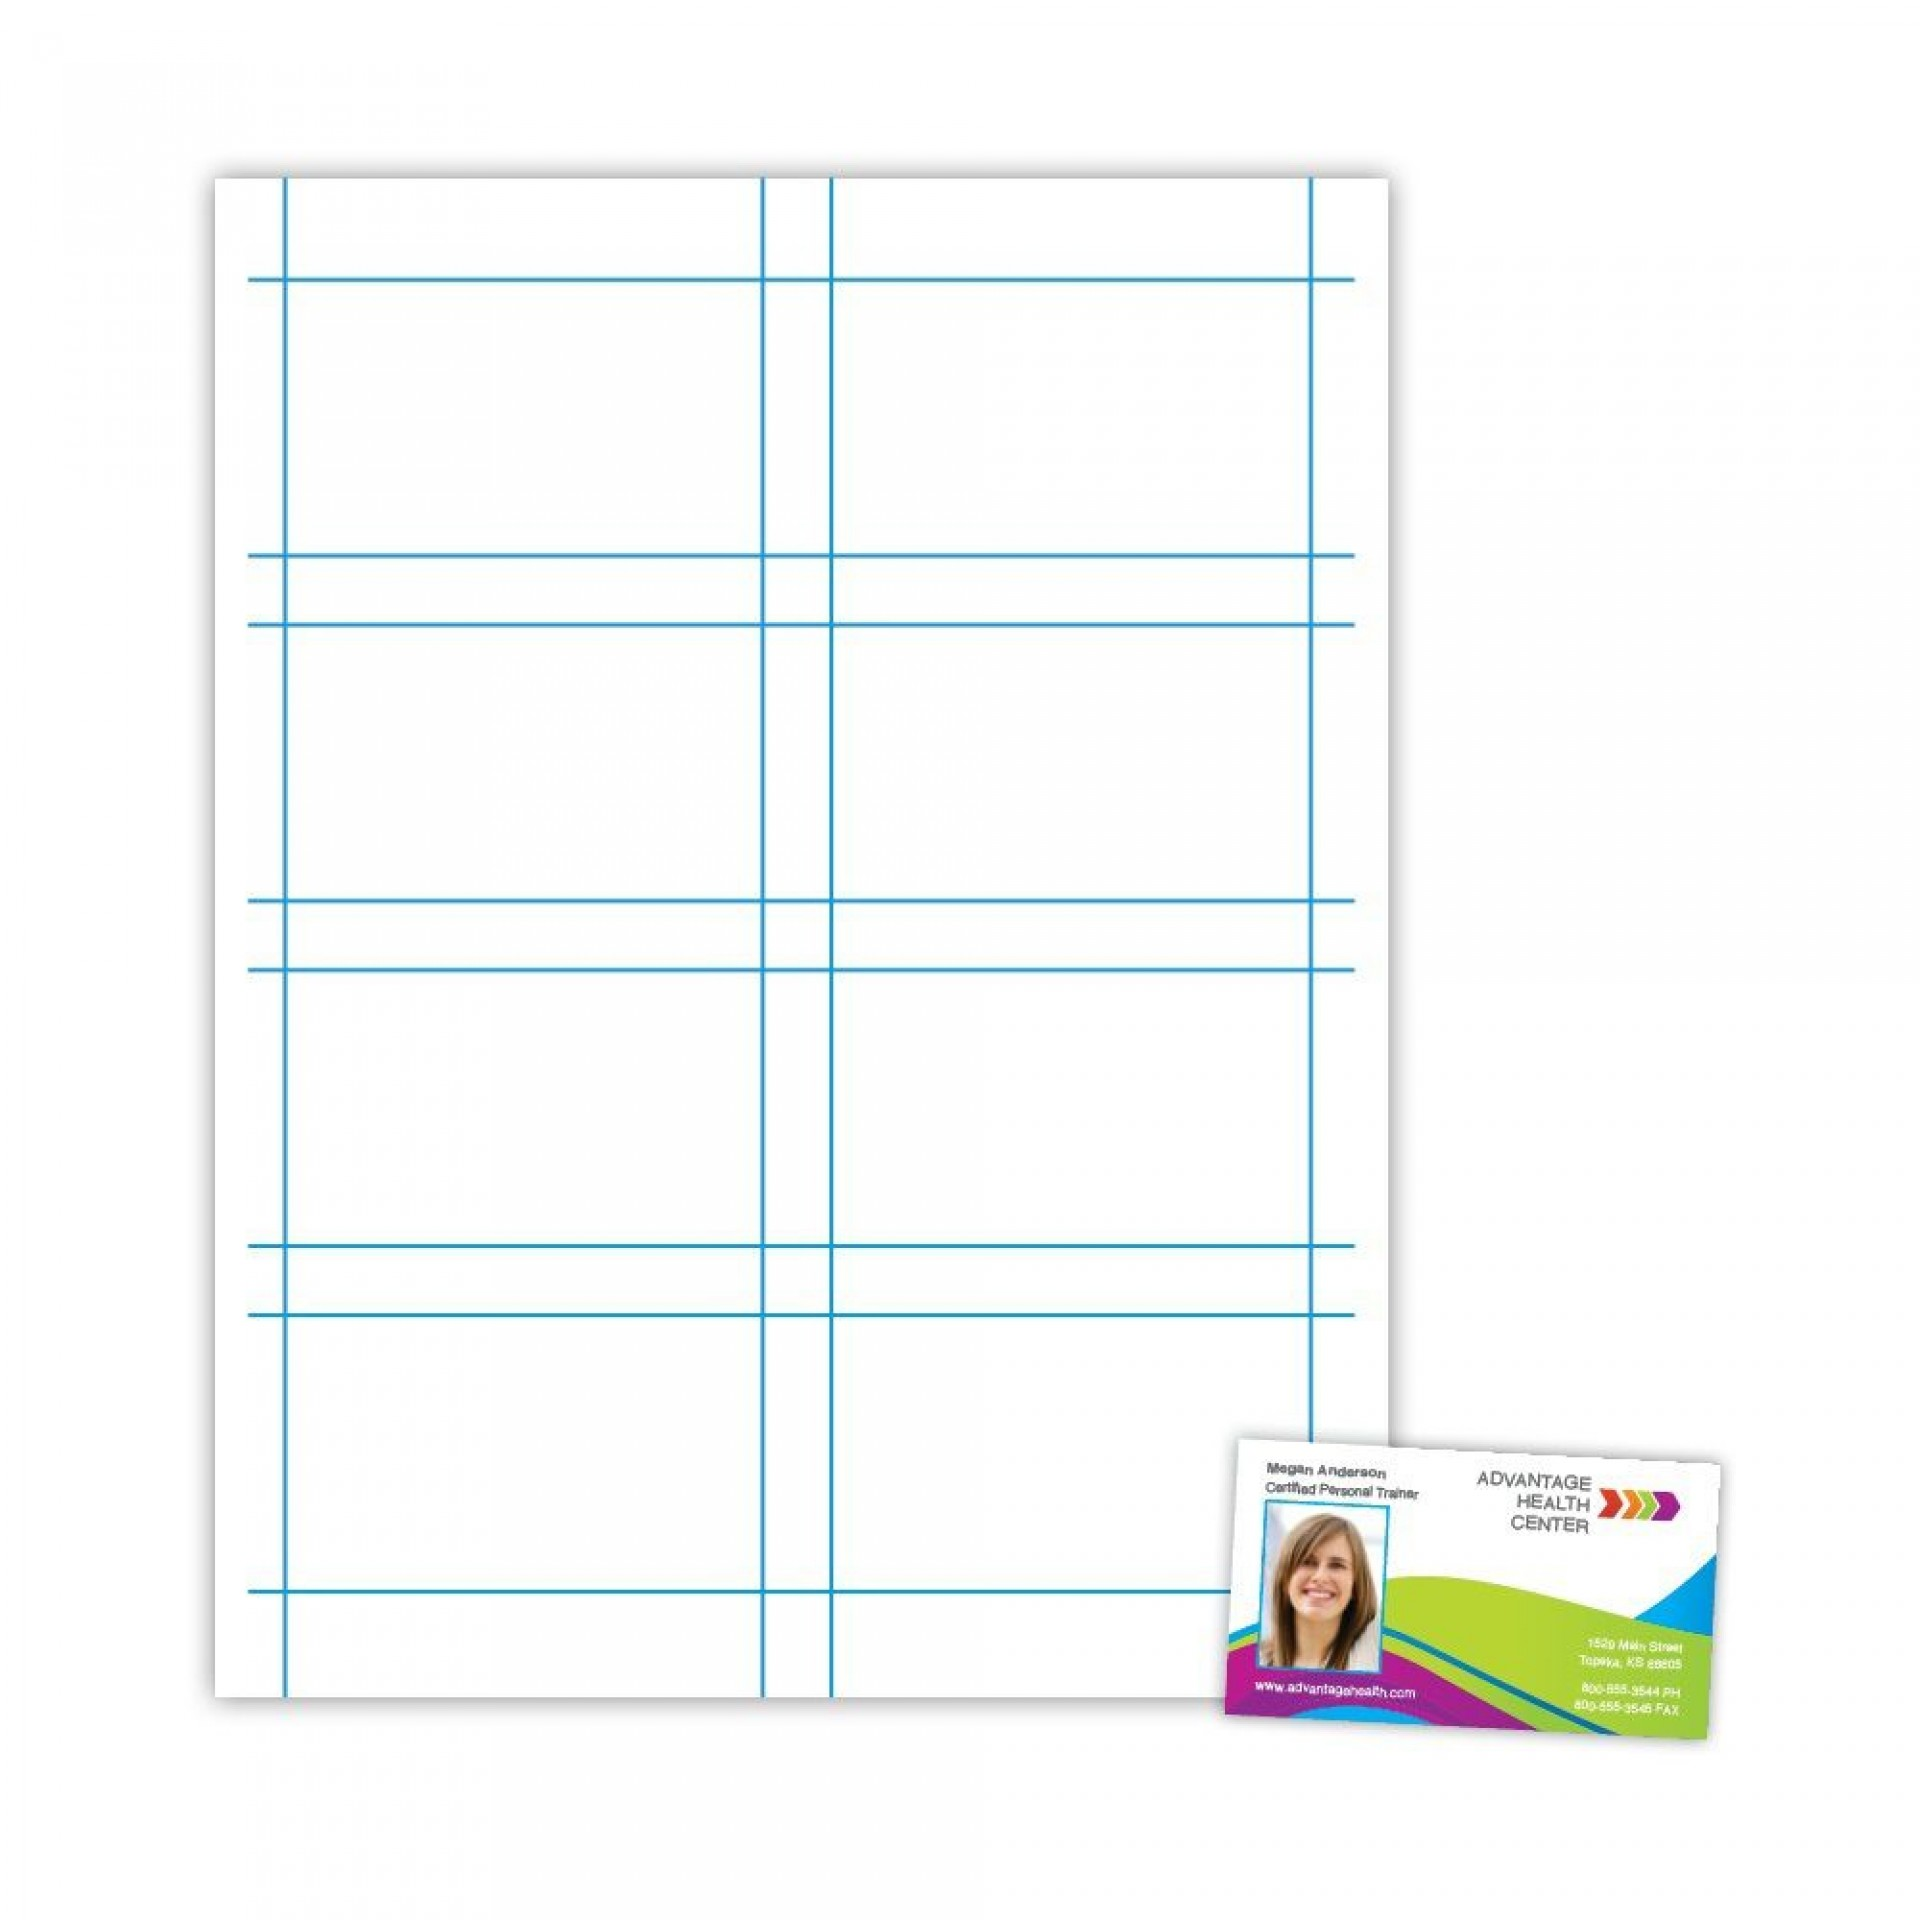 001 Magnificent Blank Busines Card Template Word High Resolution  Vertical Microsoft 2013 Avery1920